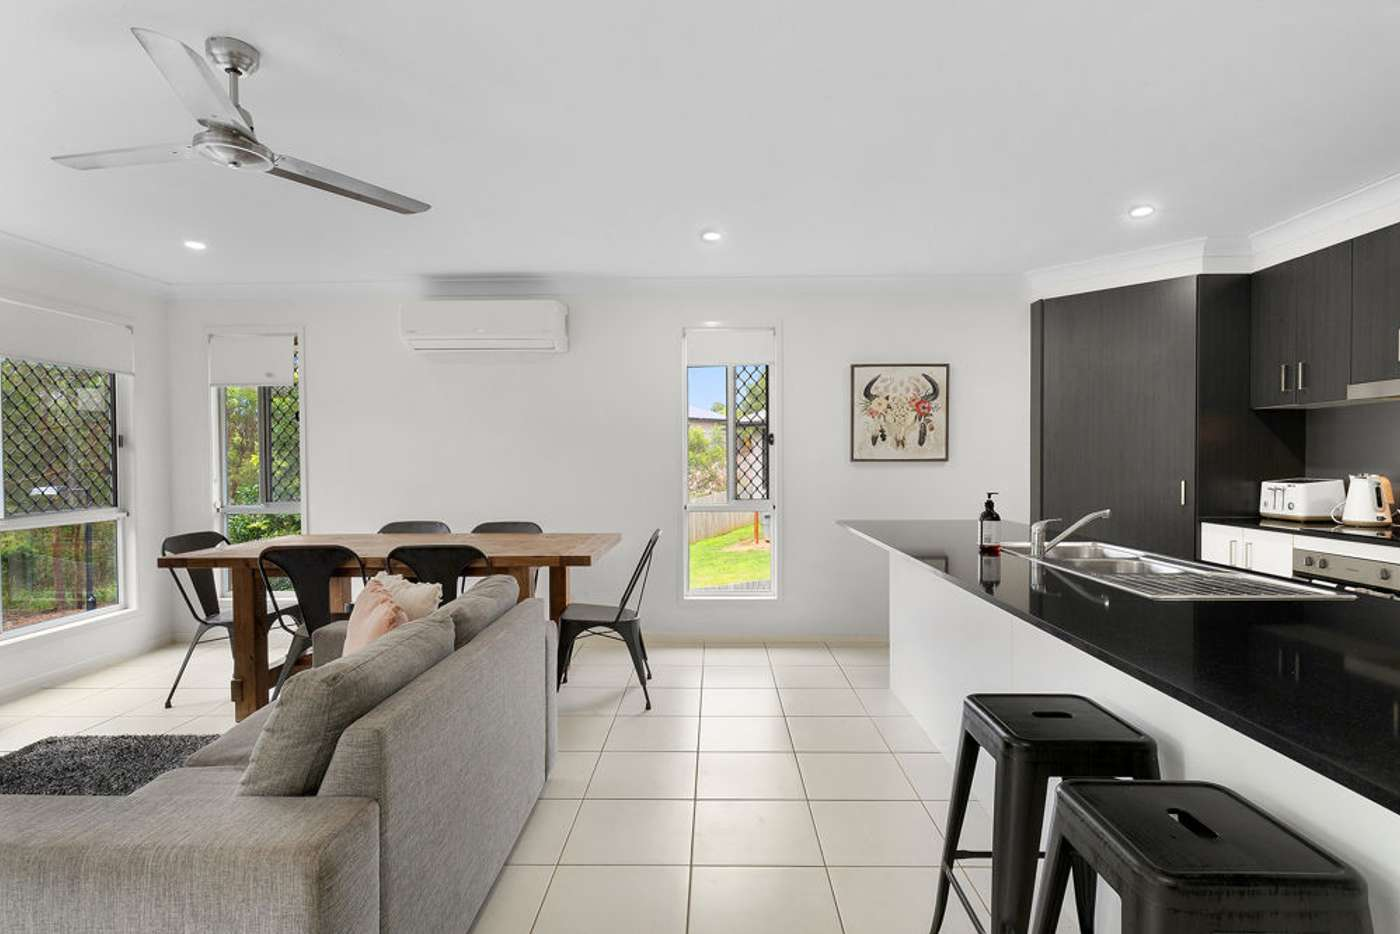 Sixth view of Homely house listing, 75 Lennon Boulevard, Narangba QLD 4504